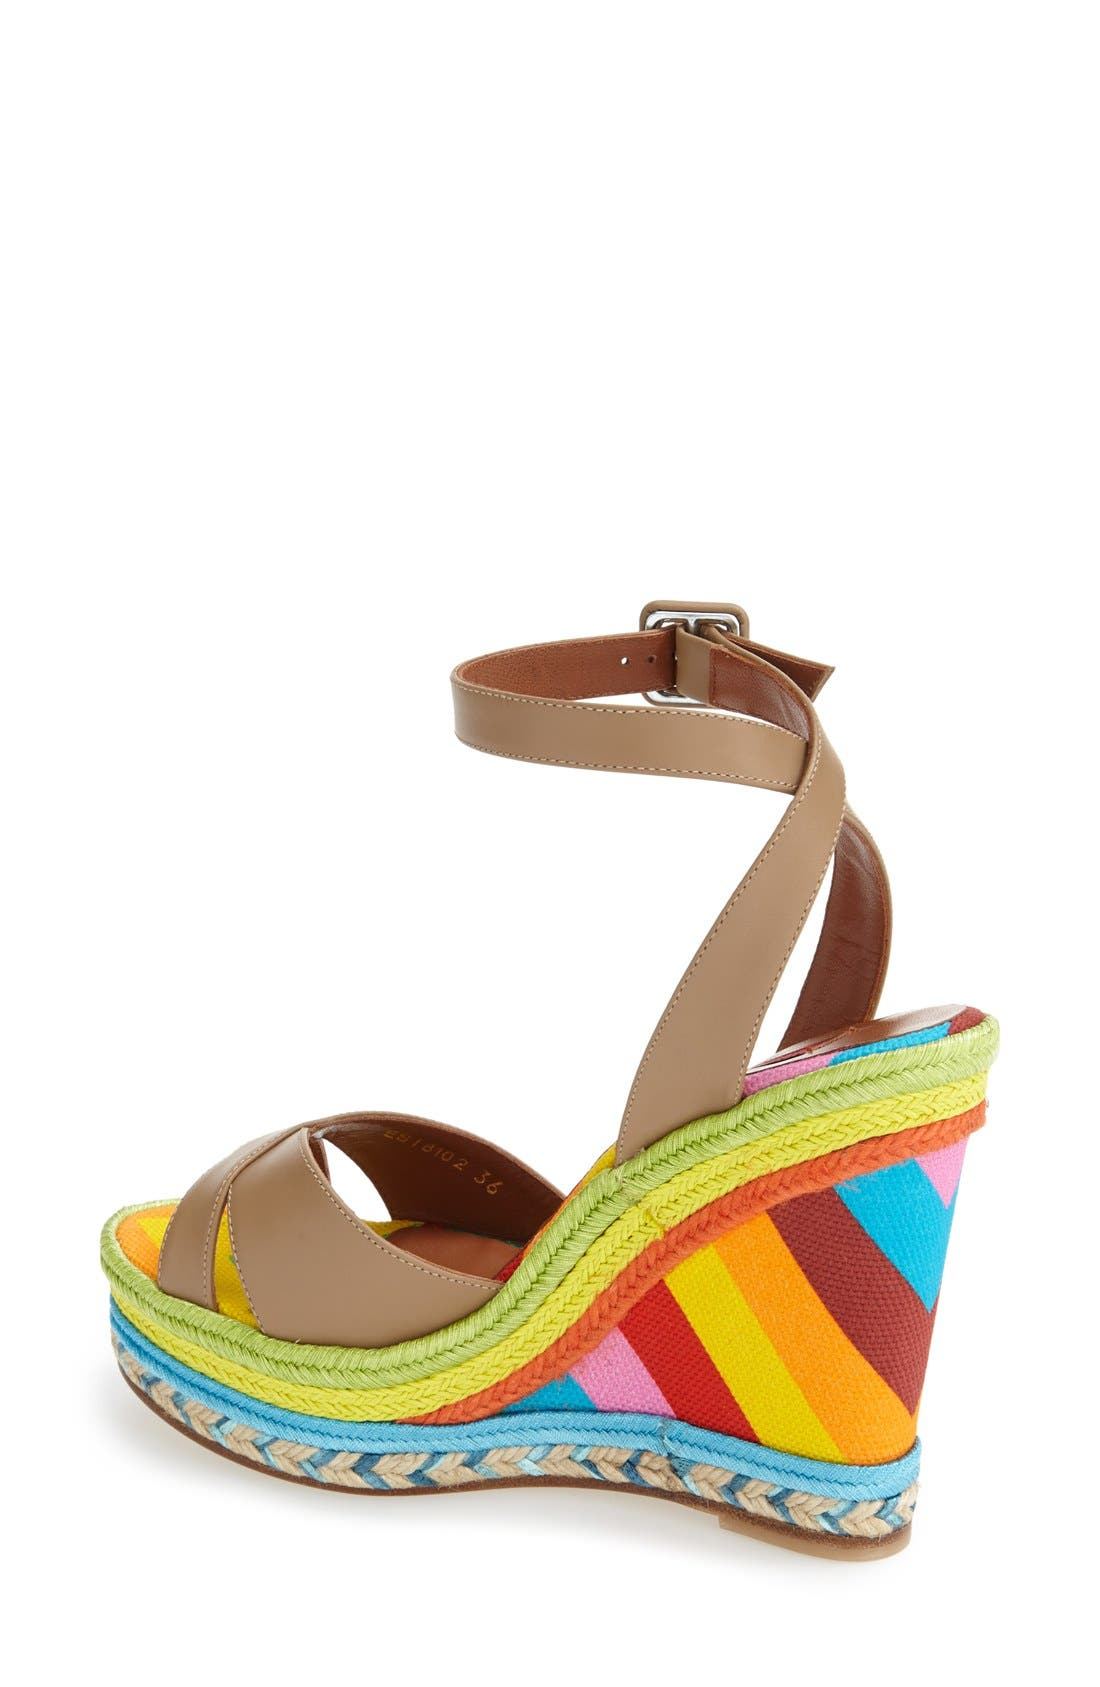 Alternate Image 2  - VALENTINO GARAVANI Espadrille Wedge Sandal (Women)